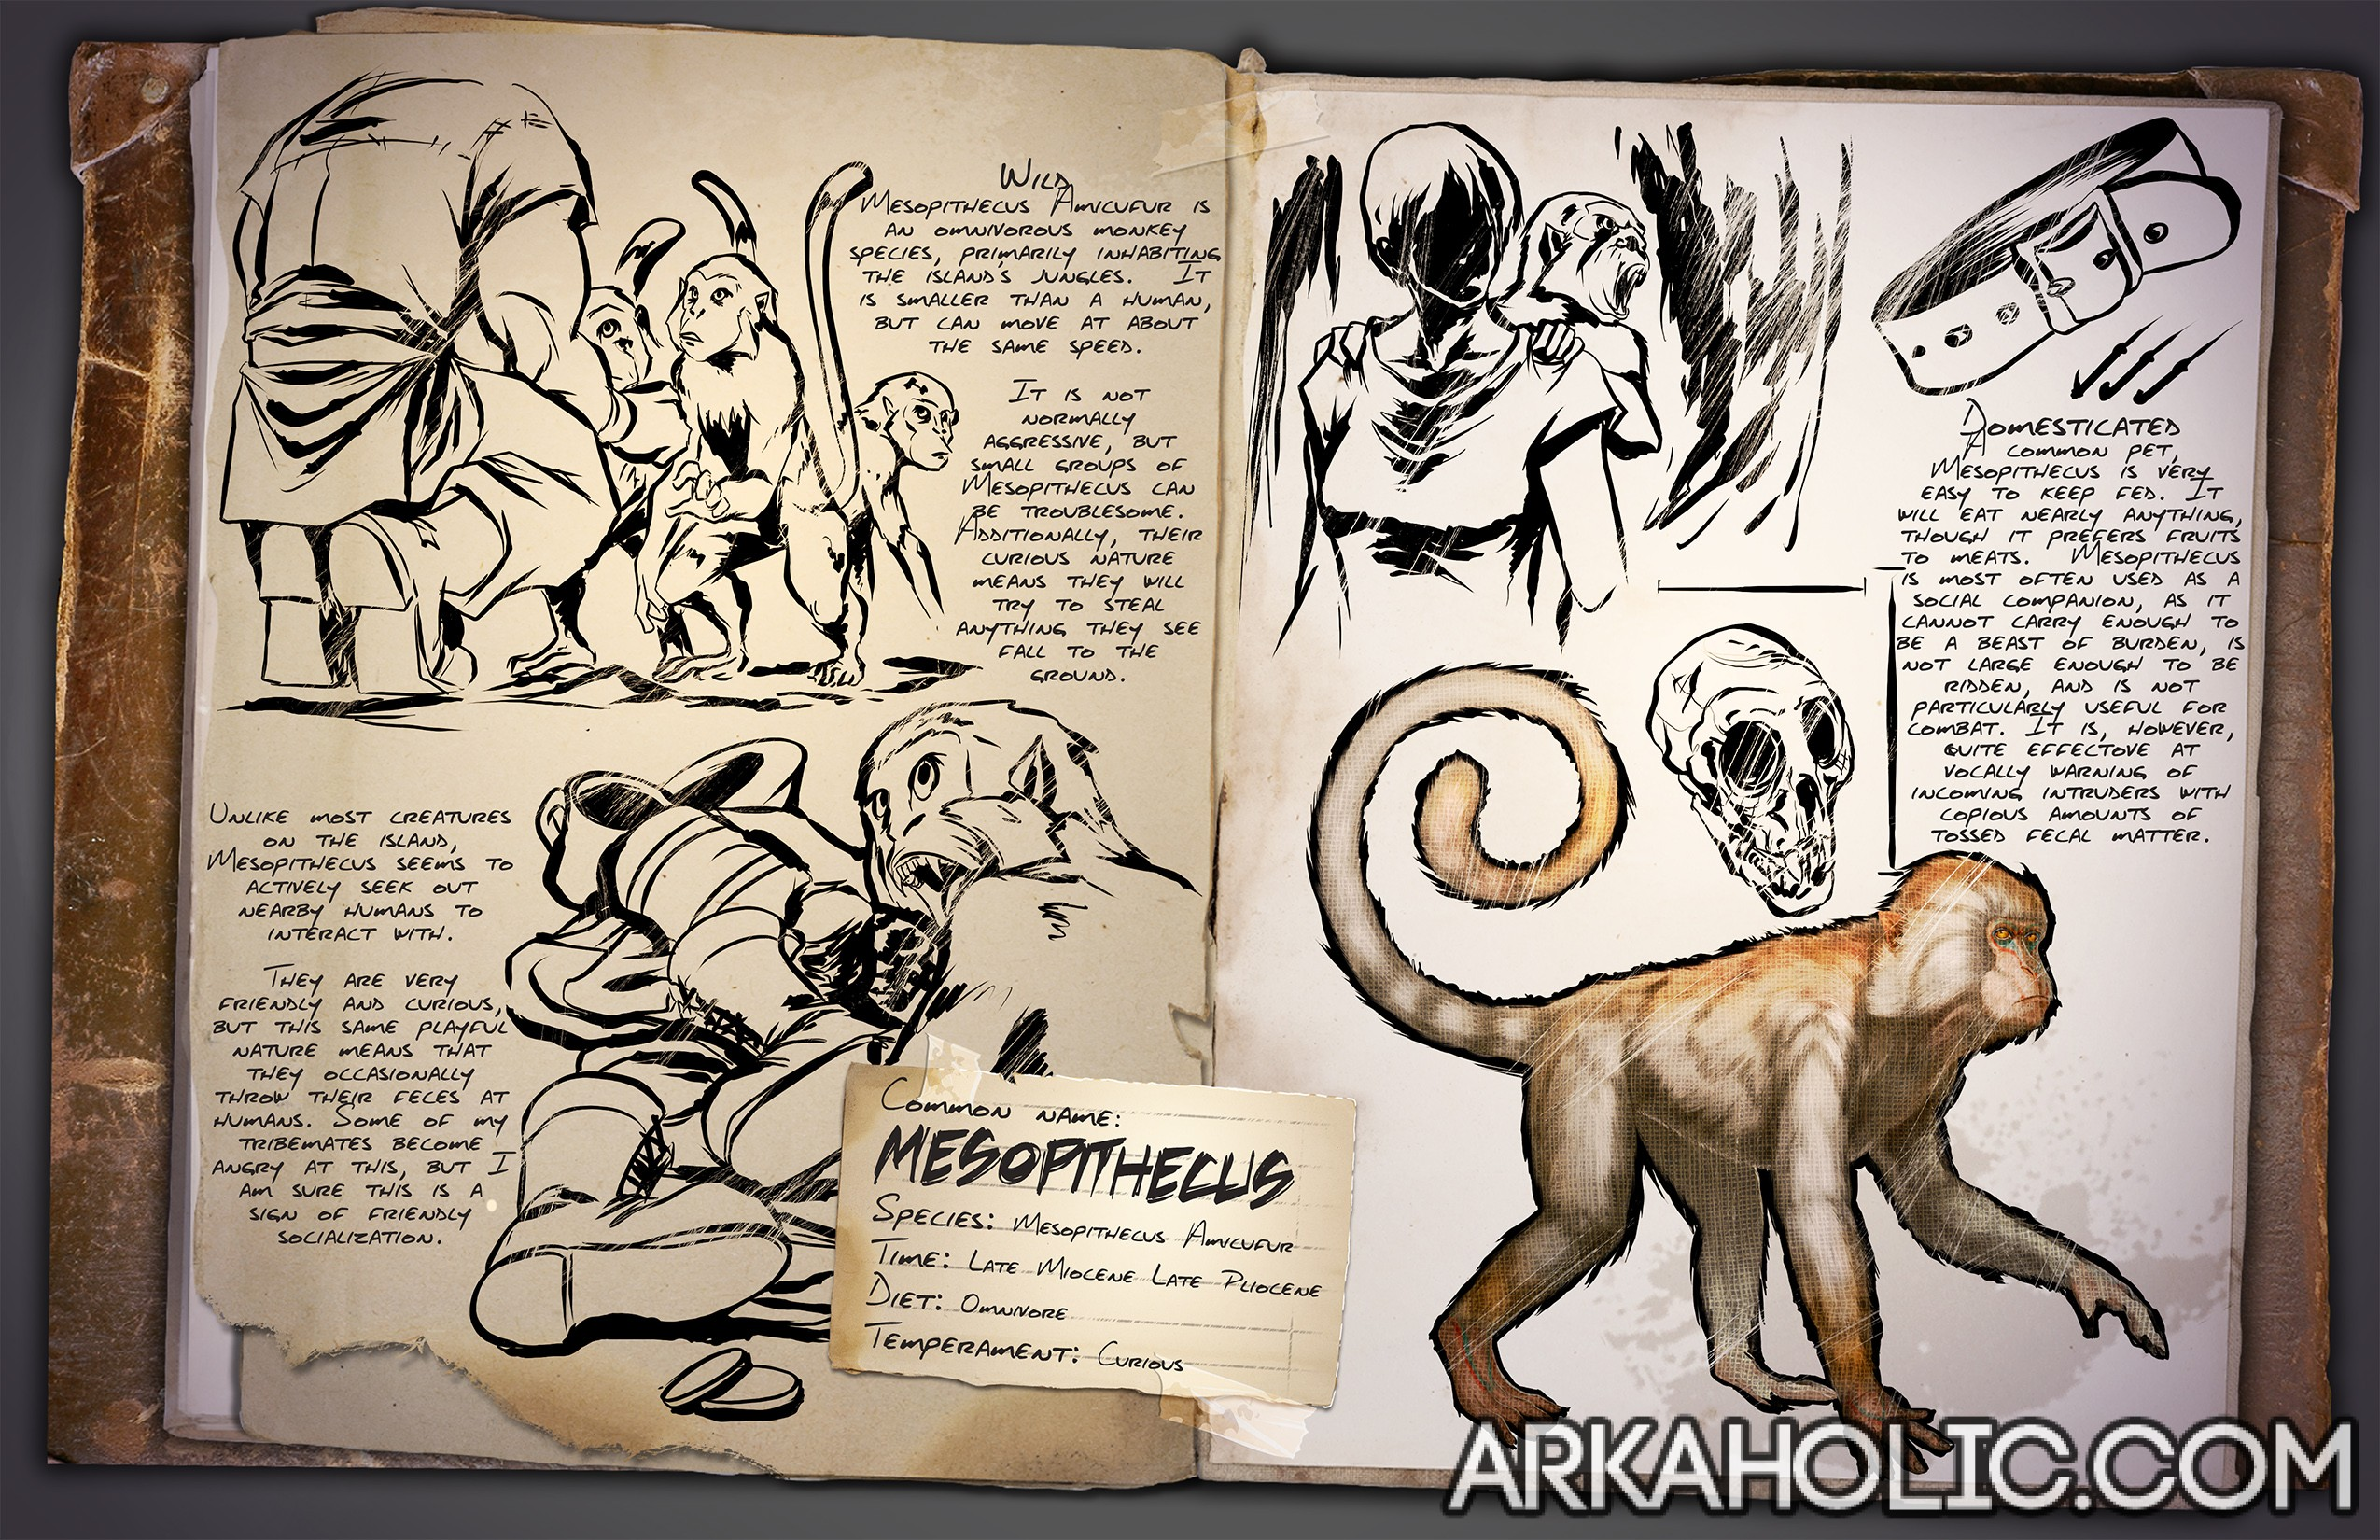 Mesopithecus monkey dino dossier guide ark survival 1433807077dossiermesopithecus malvernweather Image collections